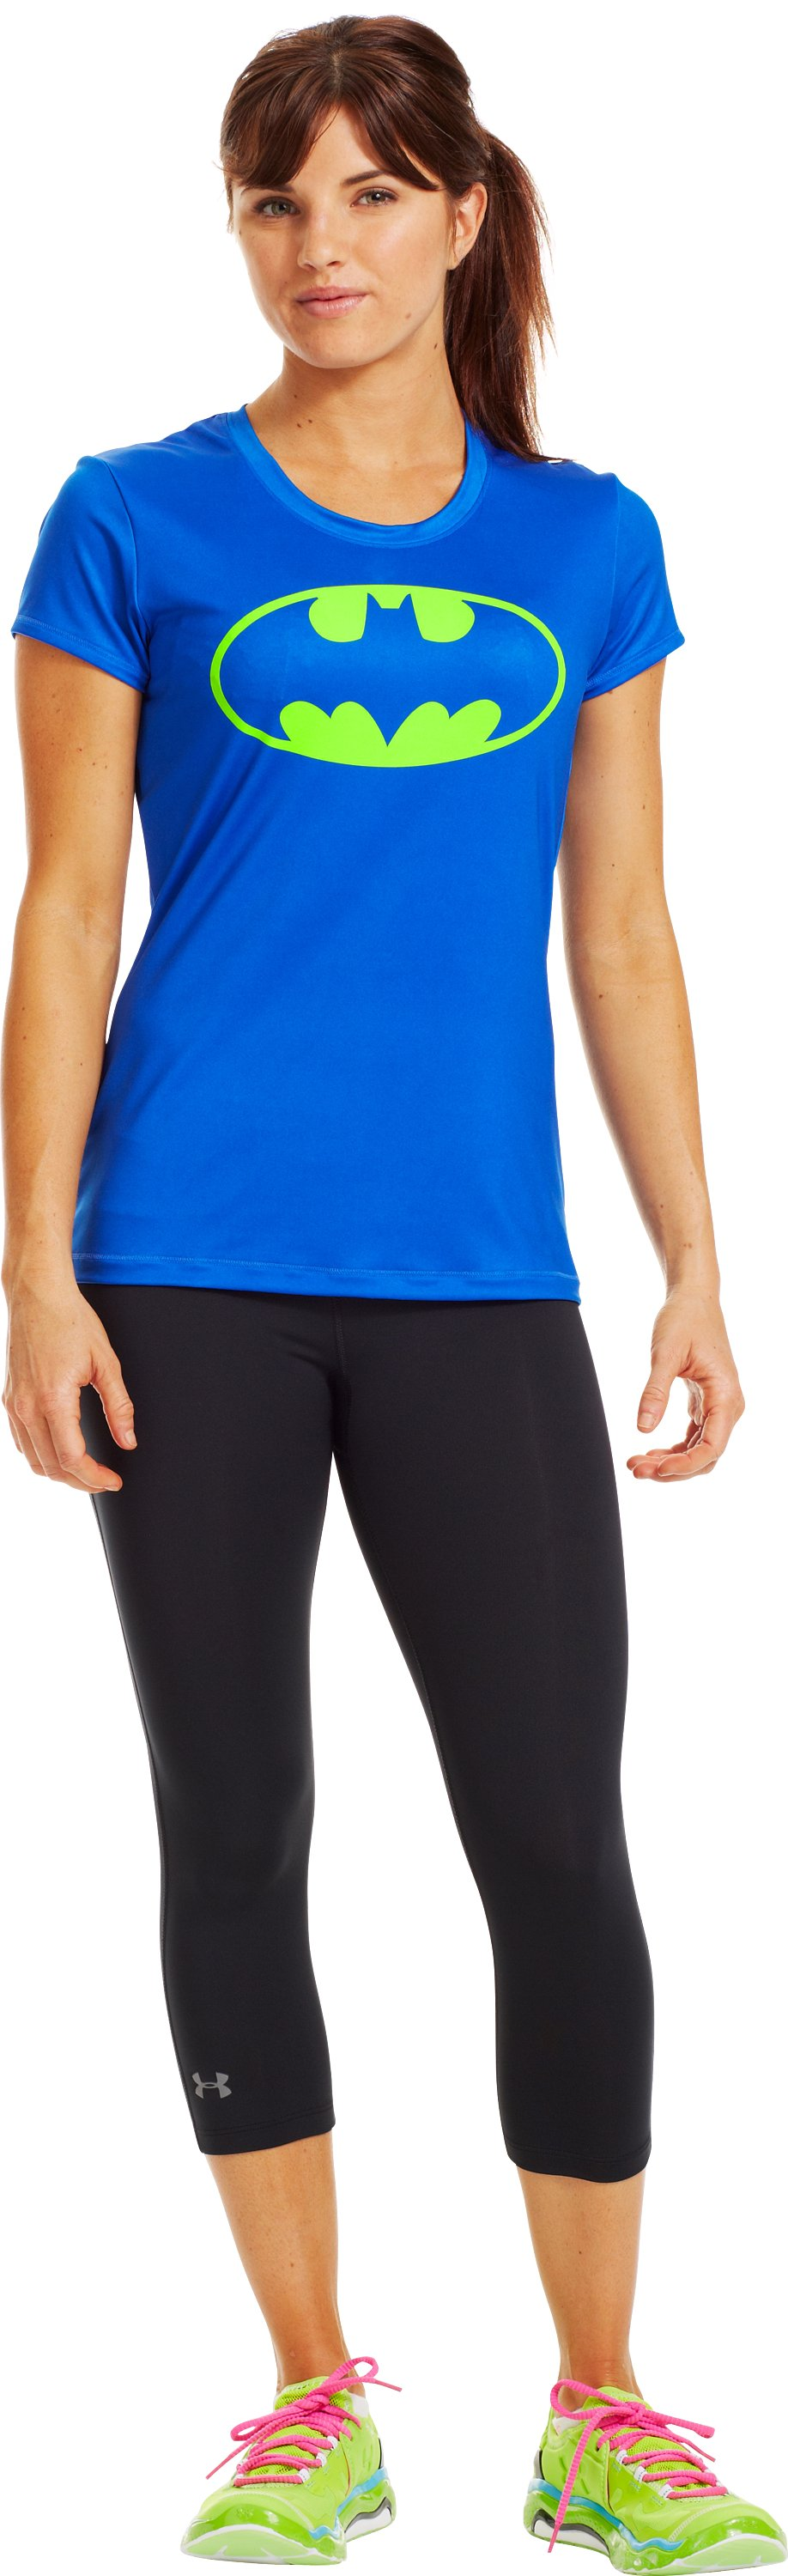 Women's Under Armour® Alter Ego Batgirl Fitted T-Shirt, BLU-AWAY, zoomed image